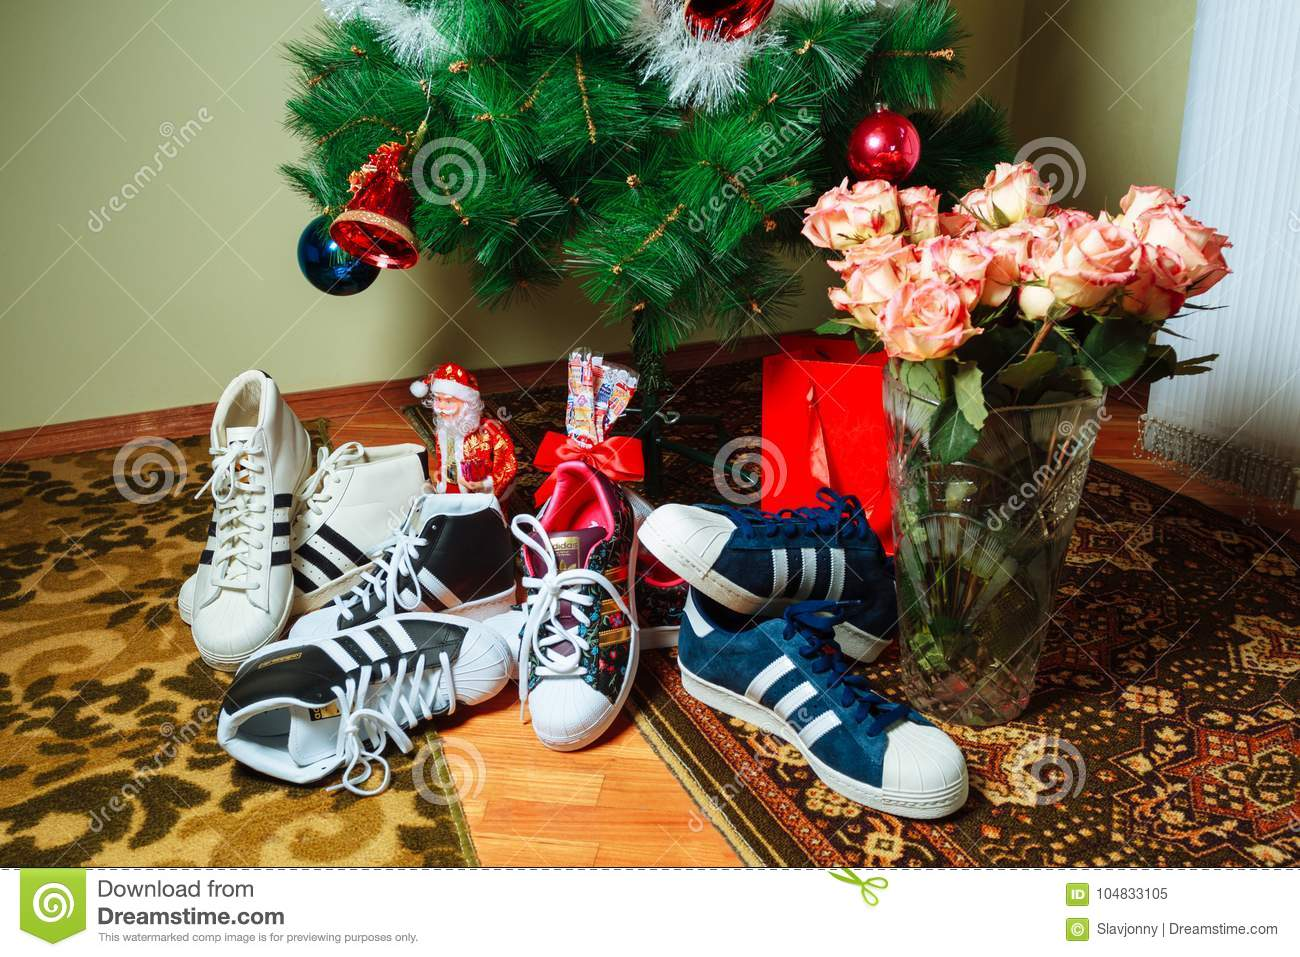 Despido Mm desagradable  Chisinau, Republic Of Moldova - January 04, 2016: Sneakers Superstar  Company Adidas On Background Of The Christmas Tree. Editorial Image - Image  of emblem, decoration: 104833105